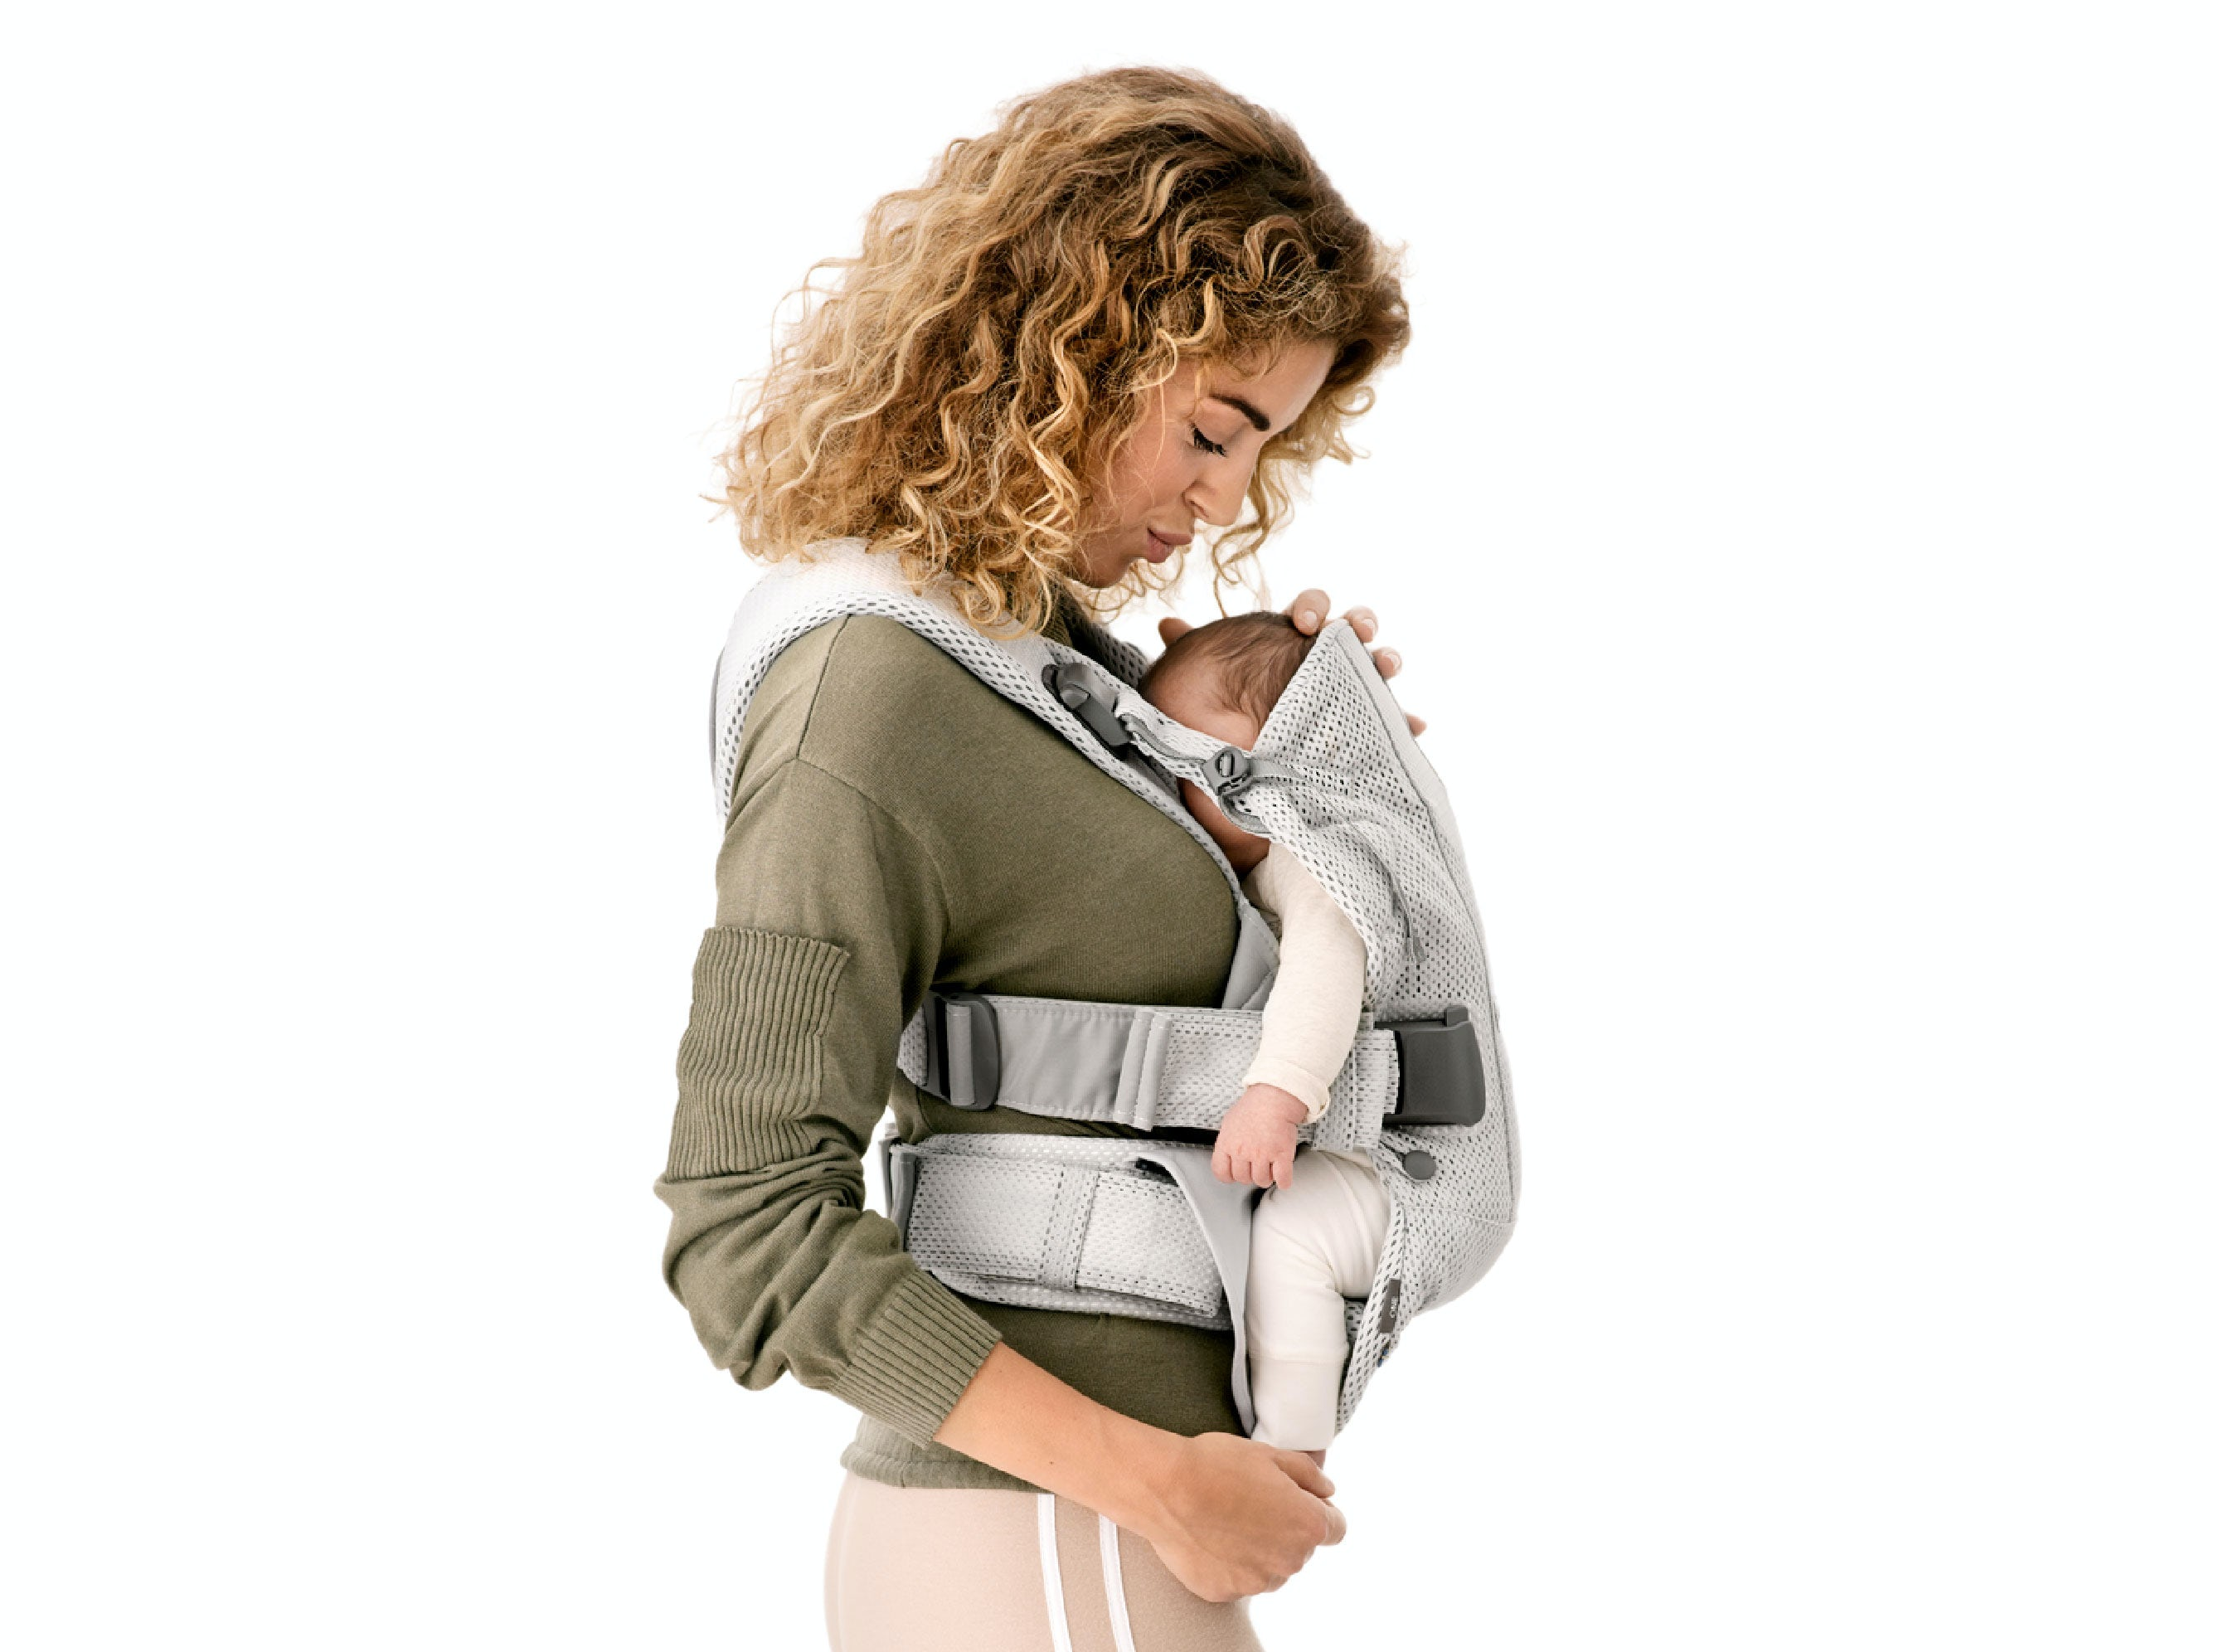 Porte Bébé One Air Physiologique En Mesh Babybjörn